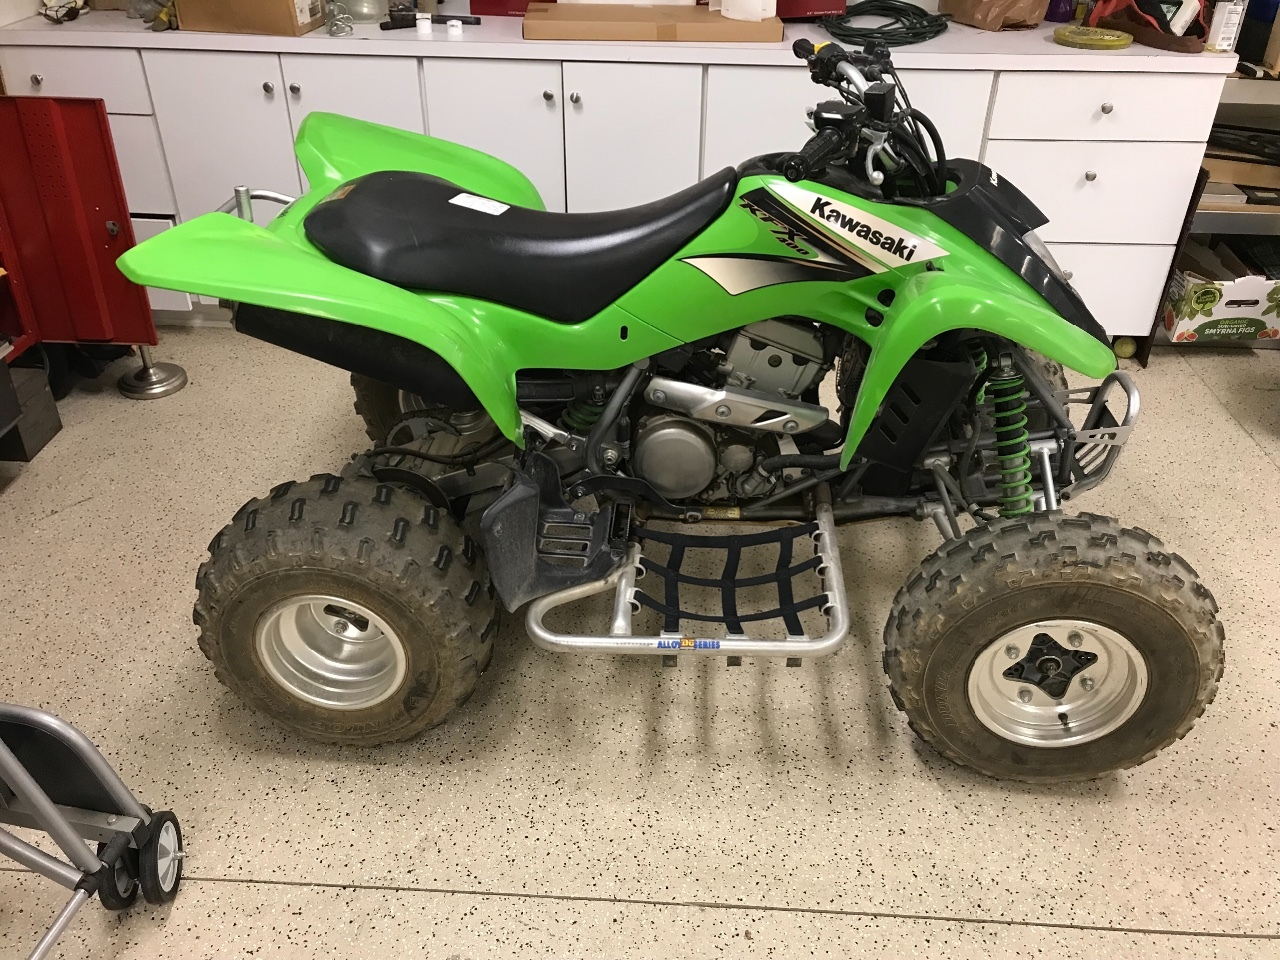 Kfx 400 For Sale - Kawasaki ATV,Side by Side,Sand Rail,Golf